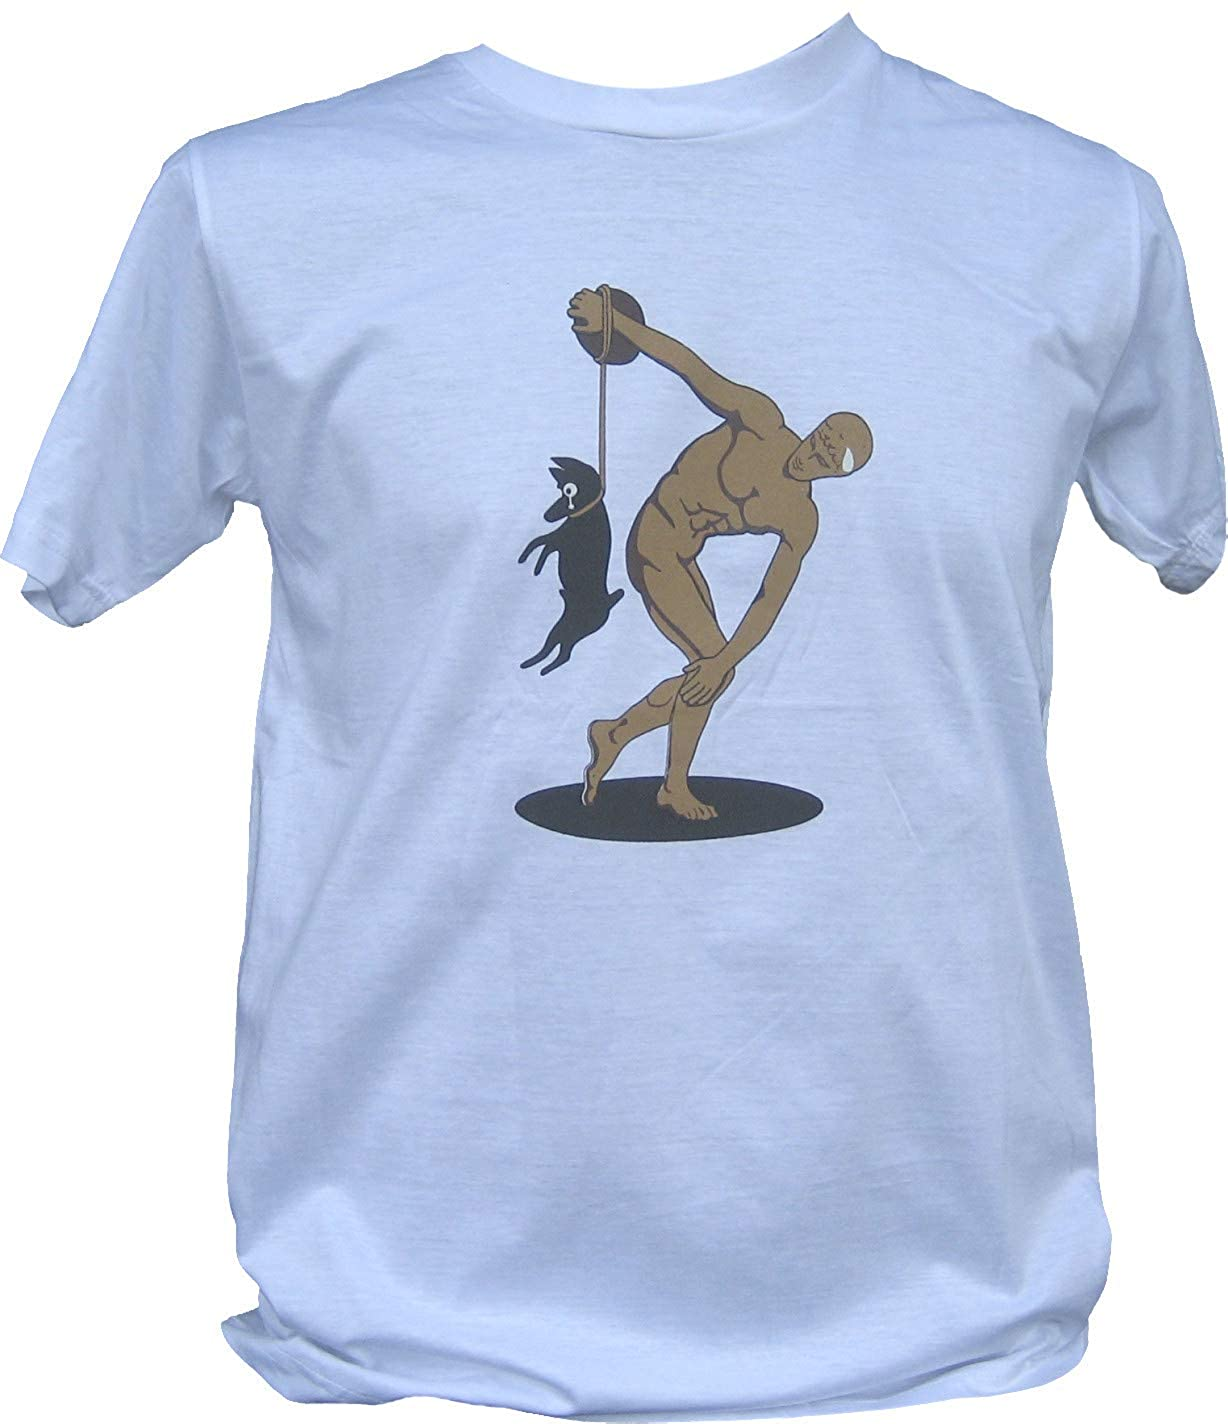 Full Funk Athenian Discus Thrower Tragically Mistaken T-Shirt